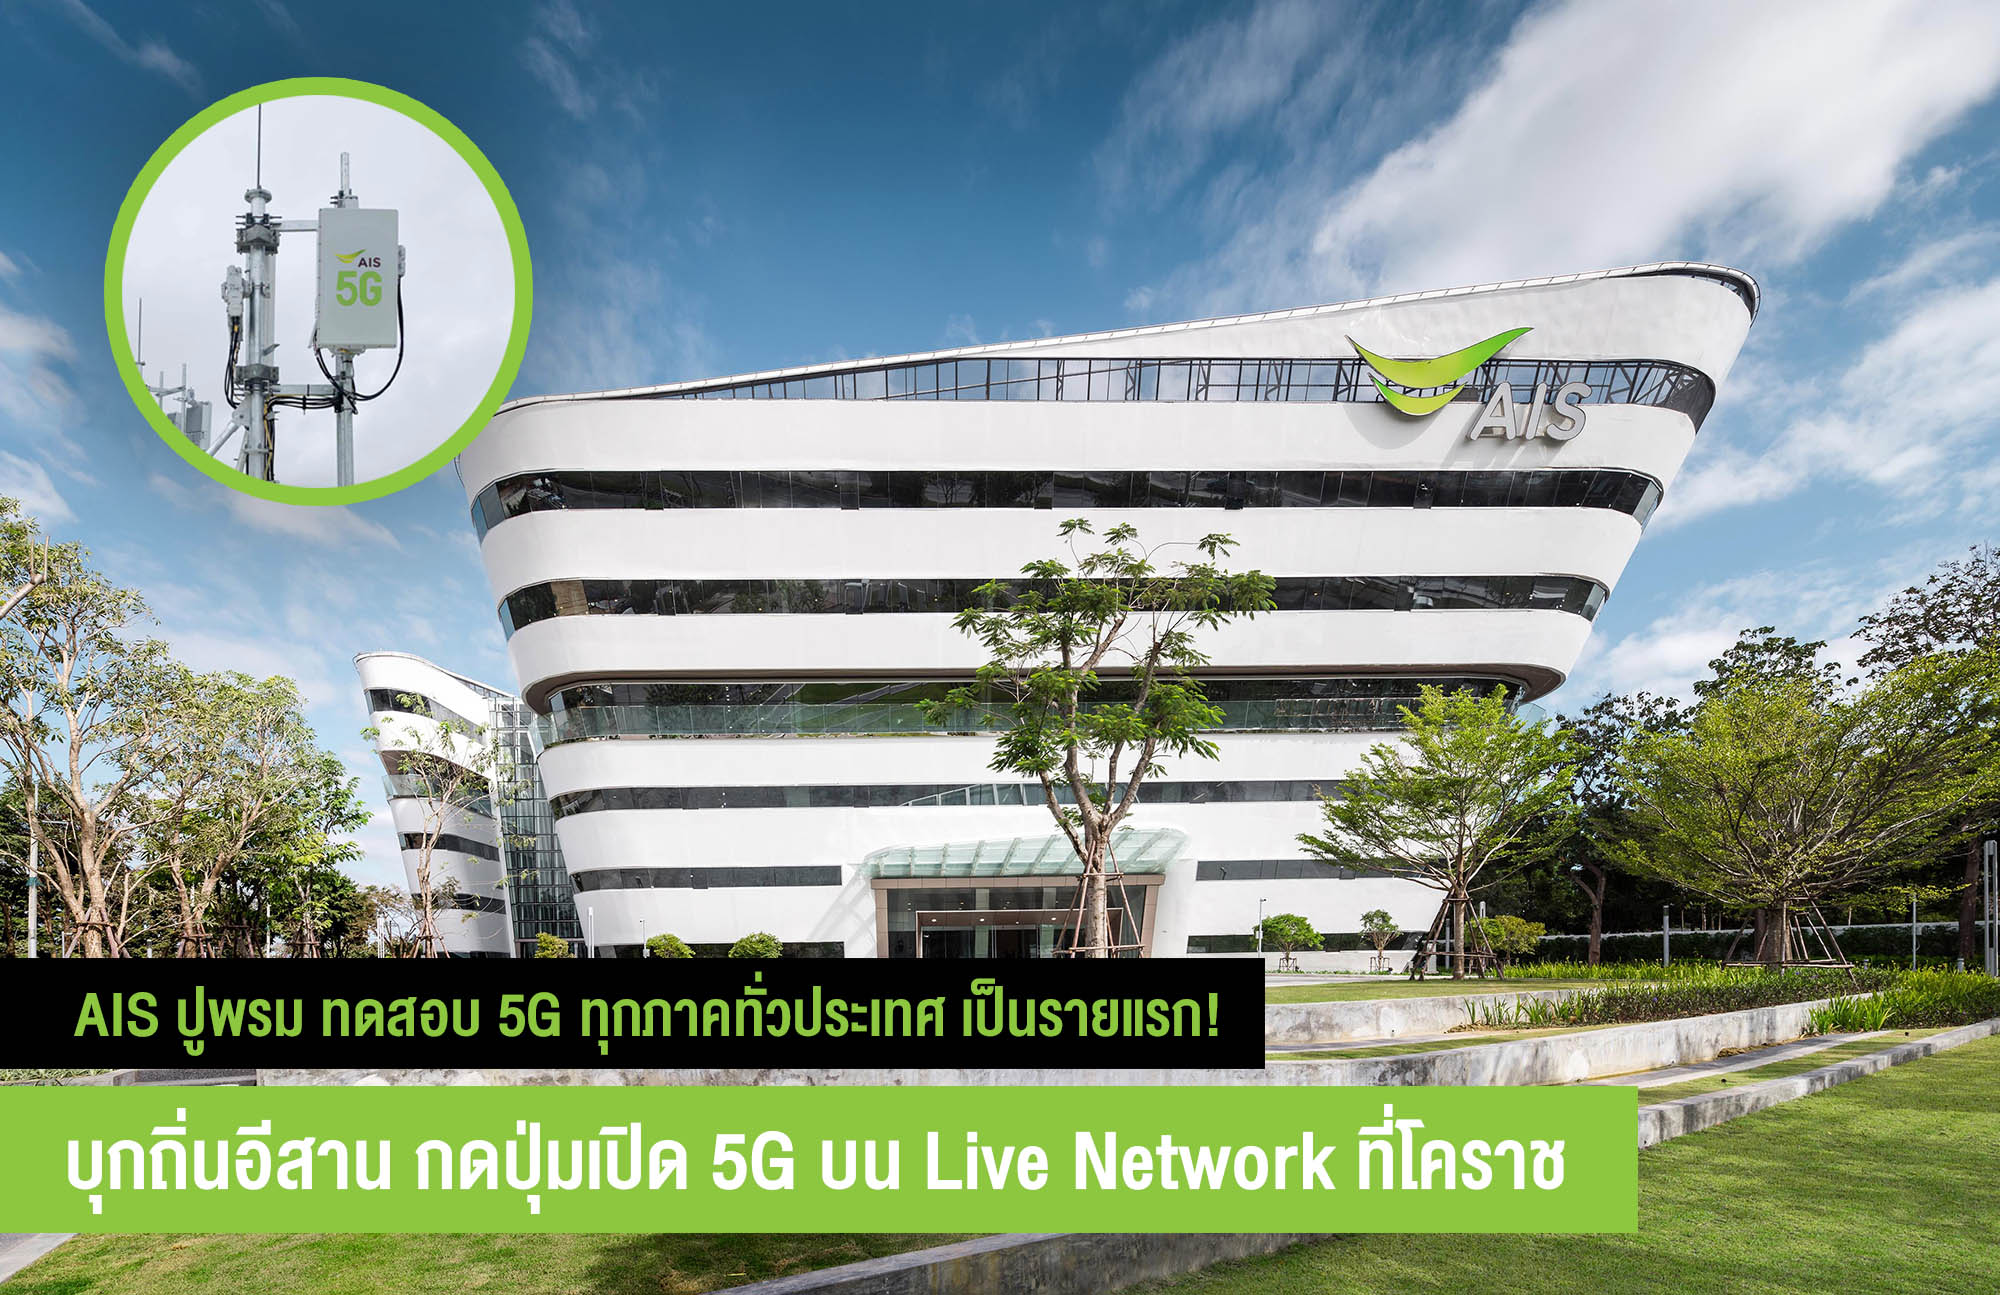 AIS test 5G network northeast in thailand